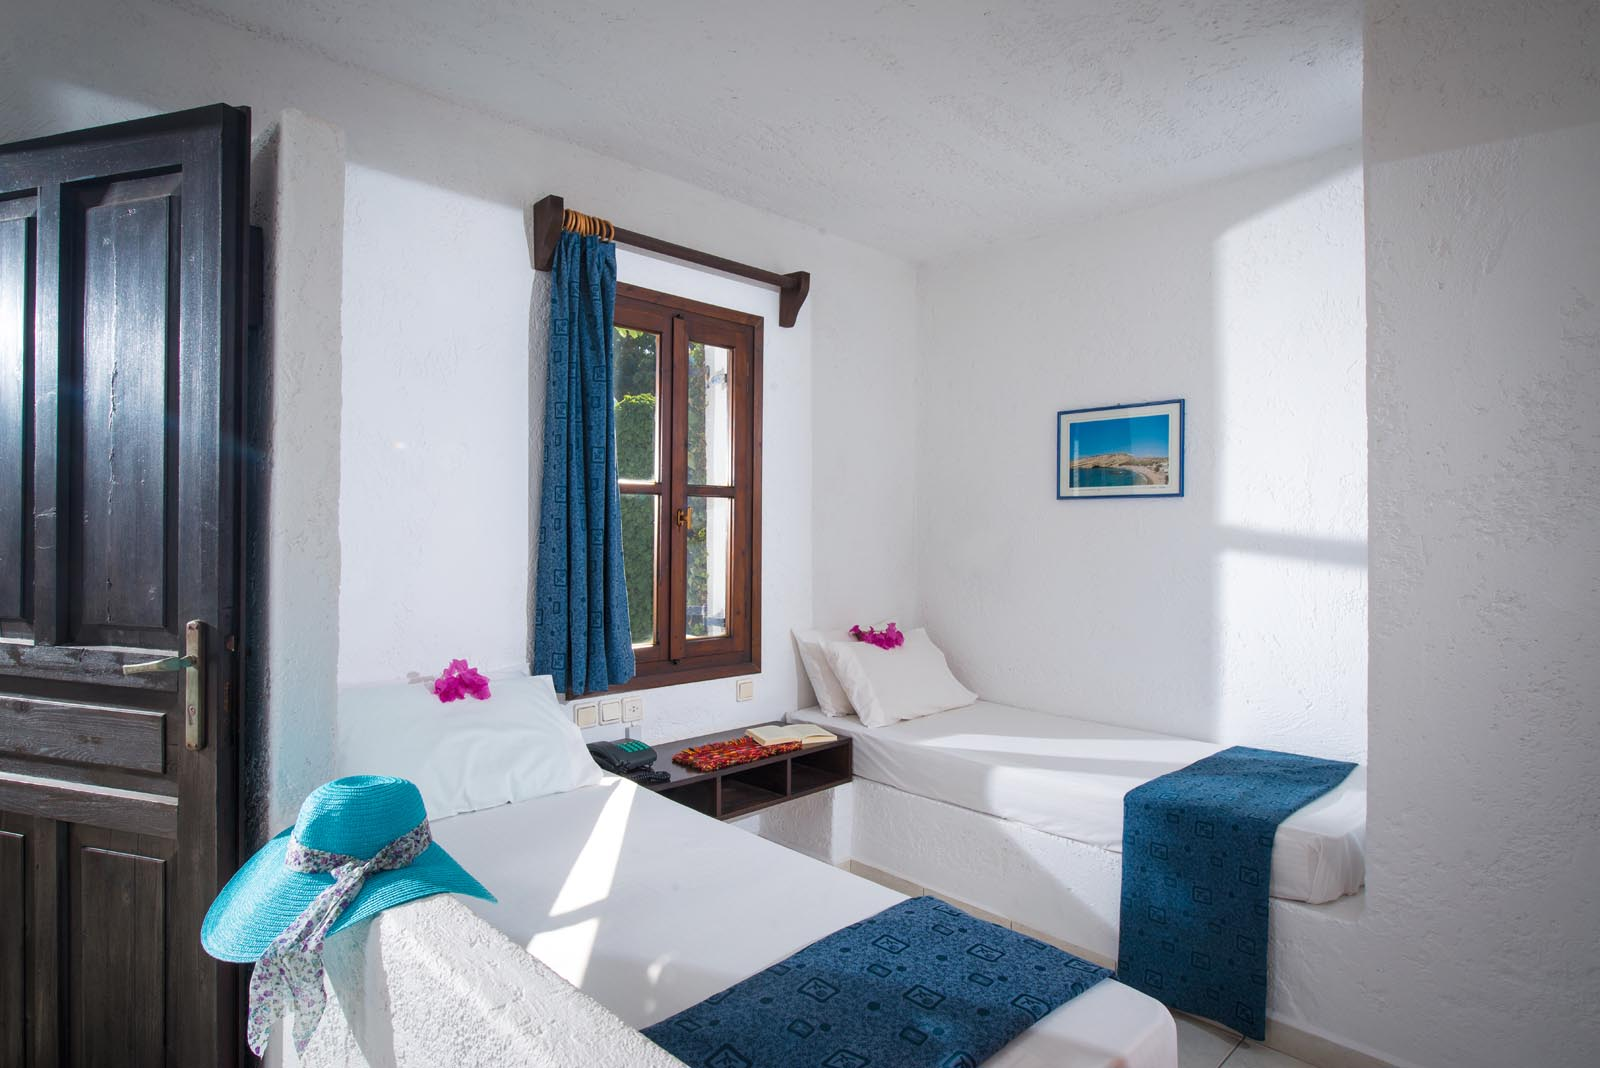 twin studios ambelos apartments nature peacefulness cretan hospitality agia pelagia crete greece